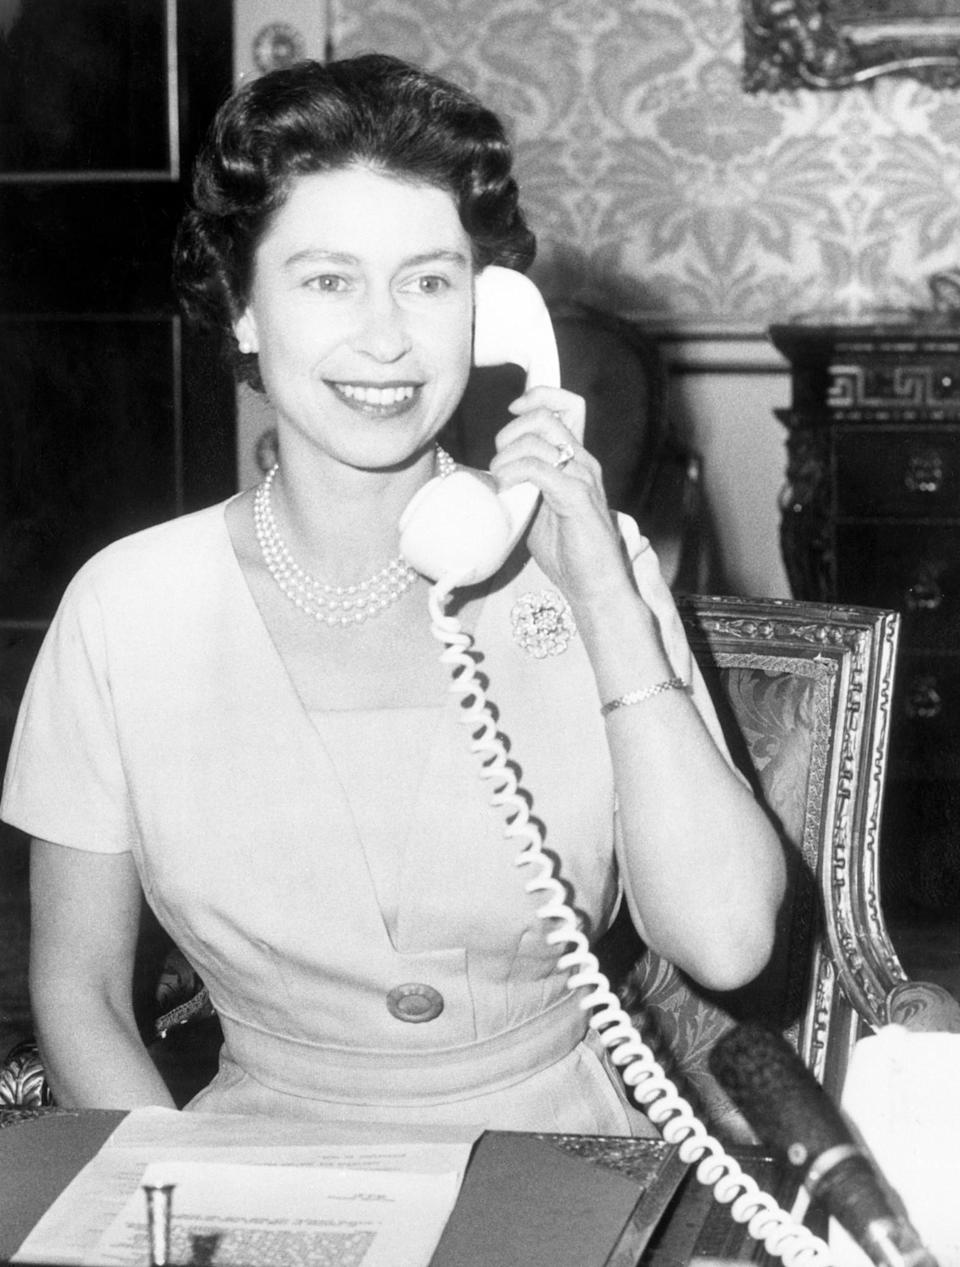 <p>John Diefenbaker, Prime Minister of Canada, receives the first ever phone call to Ottawa from the Queen. She was inaugurating the CANTAT (Canadian Trans-Atlantic Telephone). (PA Archive) </p>